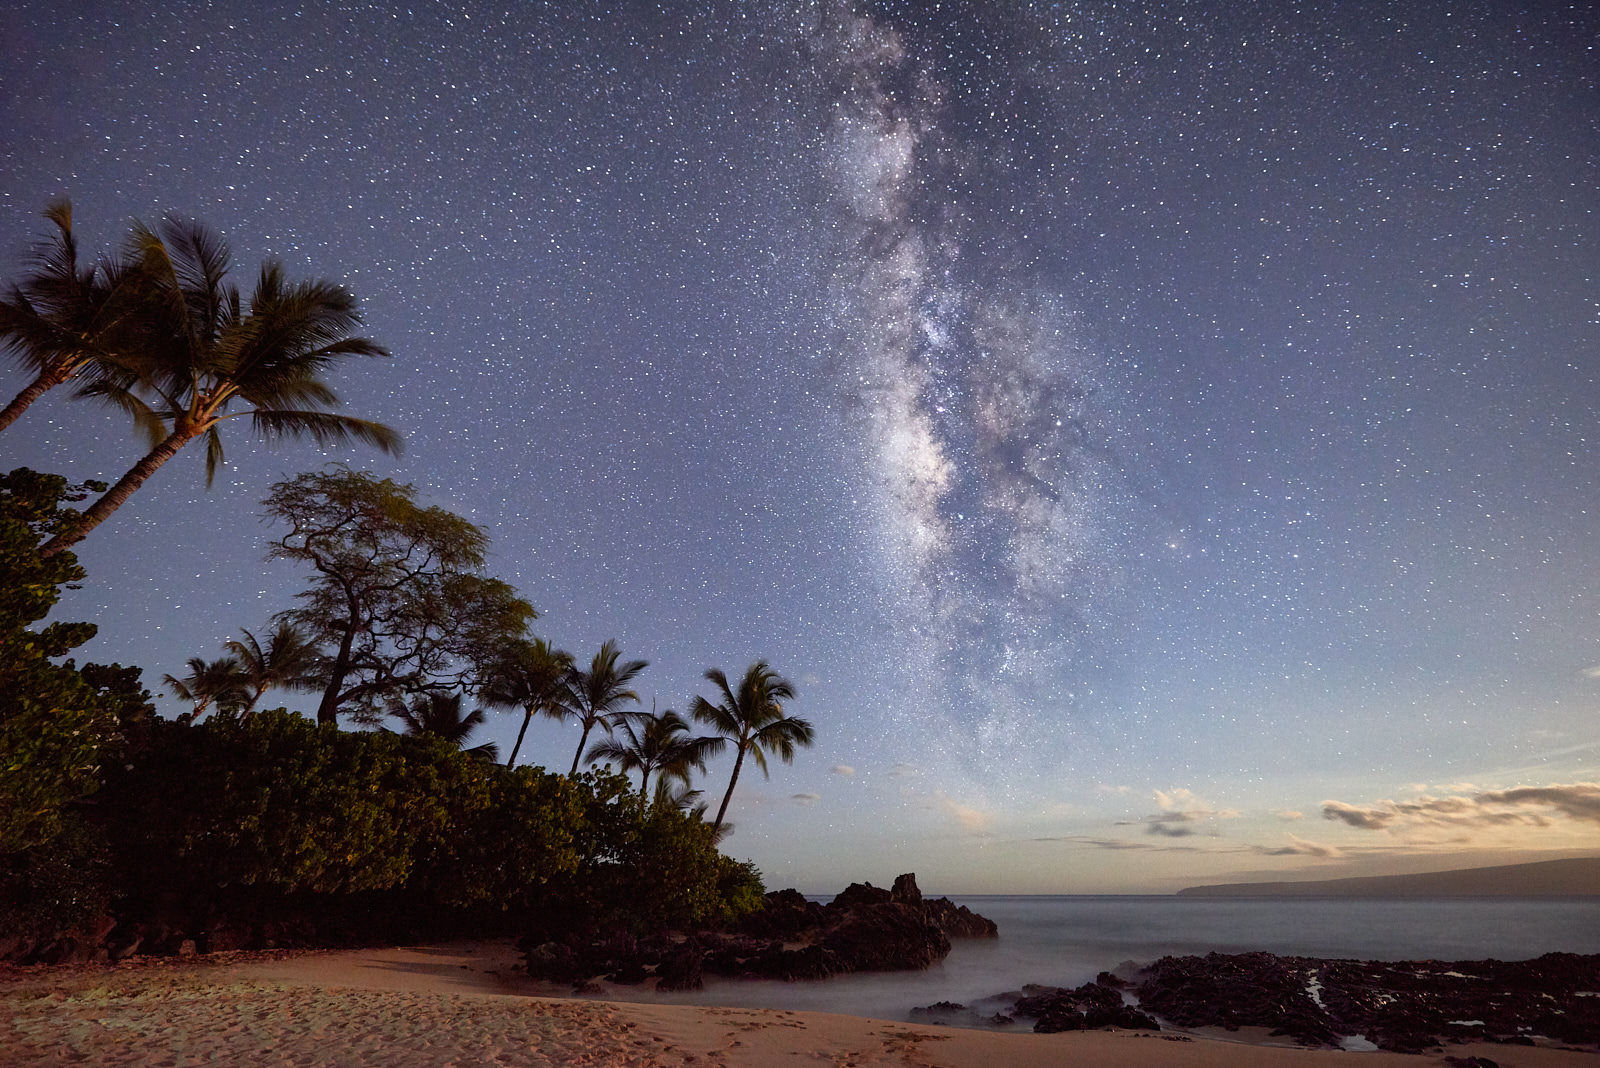 the core of the milky way galaxy is visible over the ocean with Makena Cove in the foreground illuminated by the moon